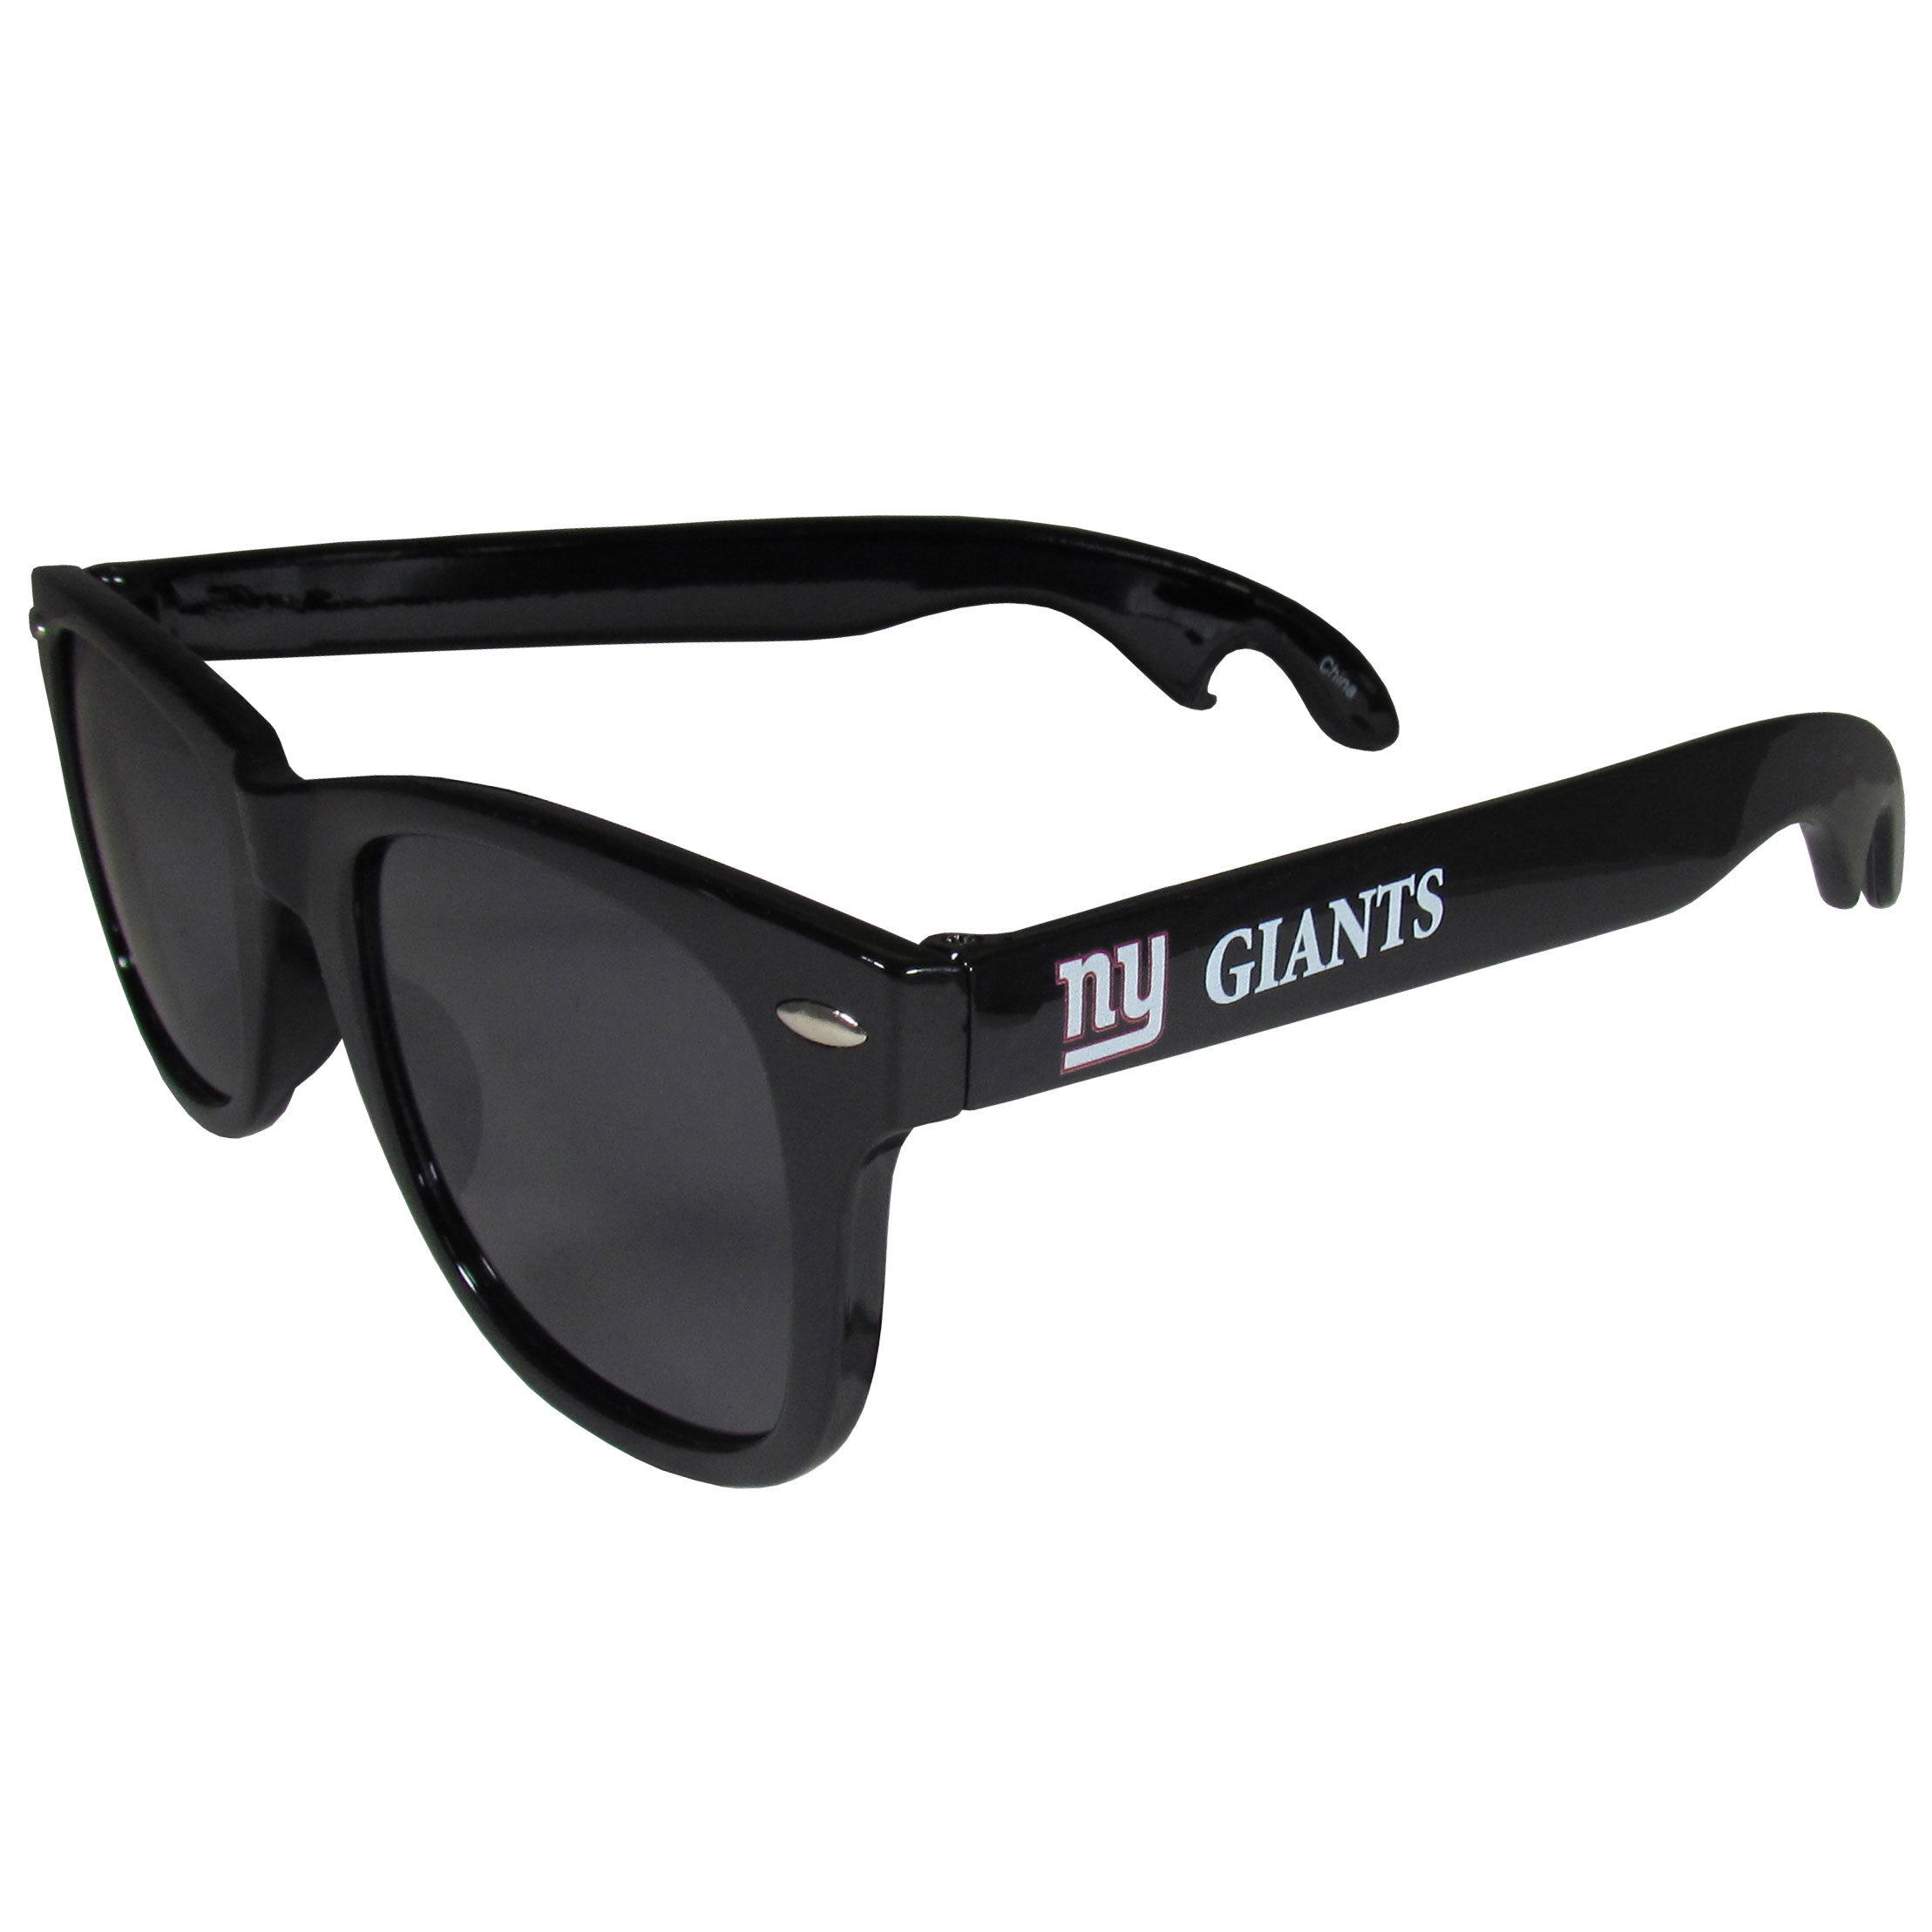 New York Giants Beachfarer Bottle Opener Sunglasses - Seriously, these sunglasses open bottles! Keep the party going with these amazing New York Giants bottle opener sunglasses. The stylish retro frames feature team designs on the arms and functional bottle openers on the end of the arms. Whether you are at the beach or having a backyard BBQ on game day, these shades will keep your eyes protected with 100% UVA/UVB protection and keep you hydrated with the handy bottle opener arms.